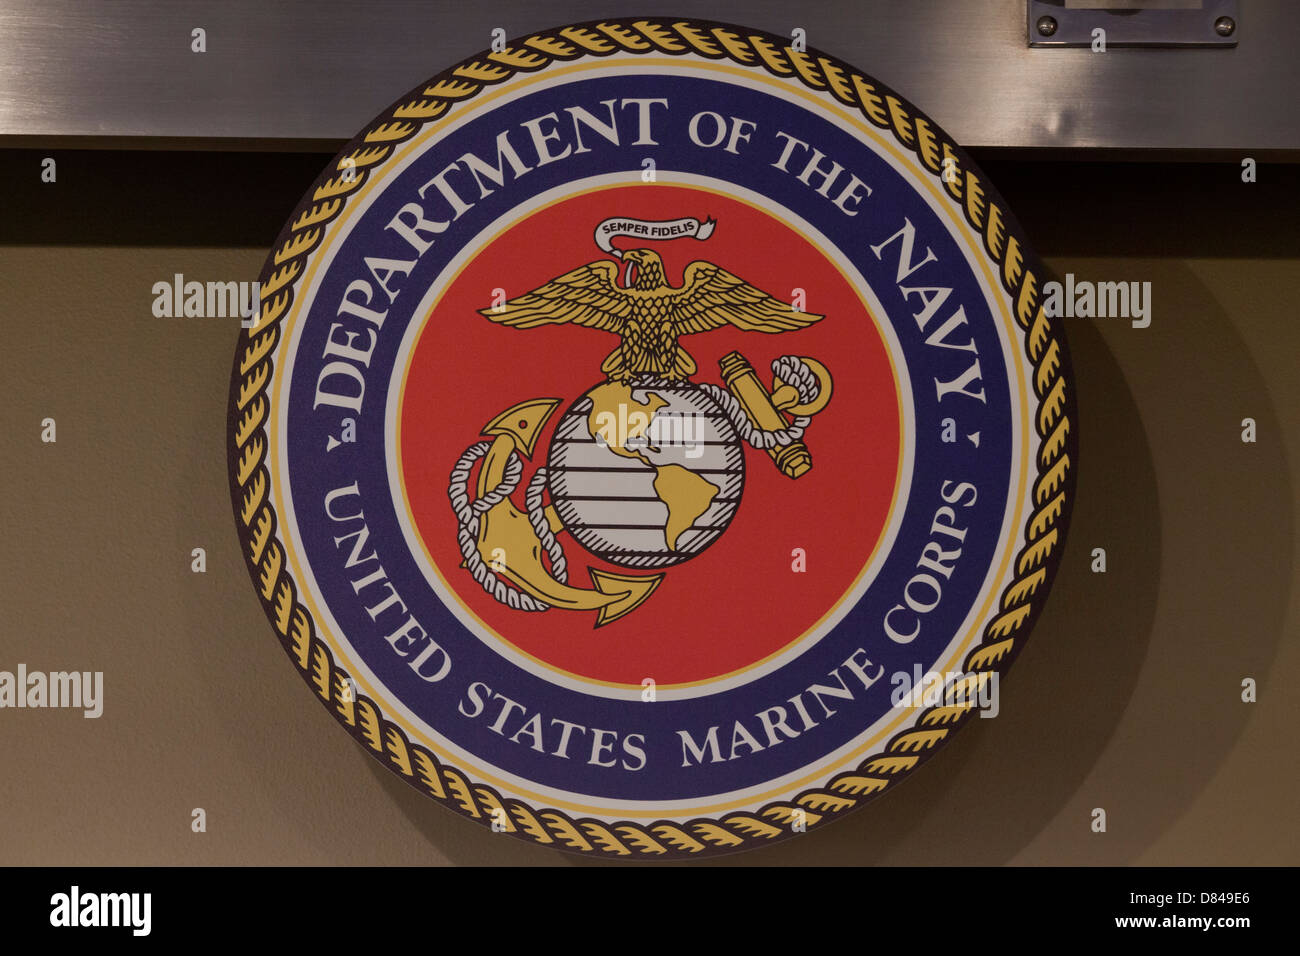 Official seal of the US Marine Corps - Stock Image